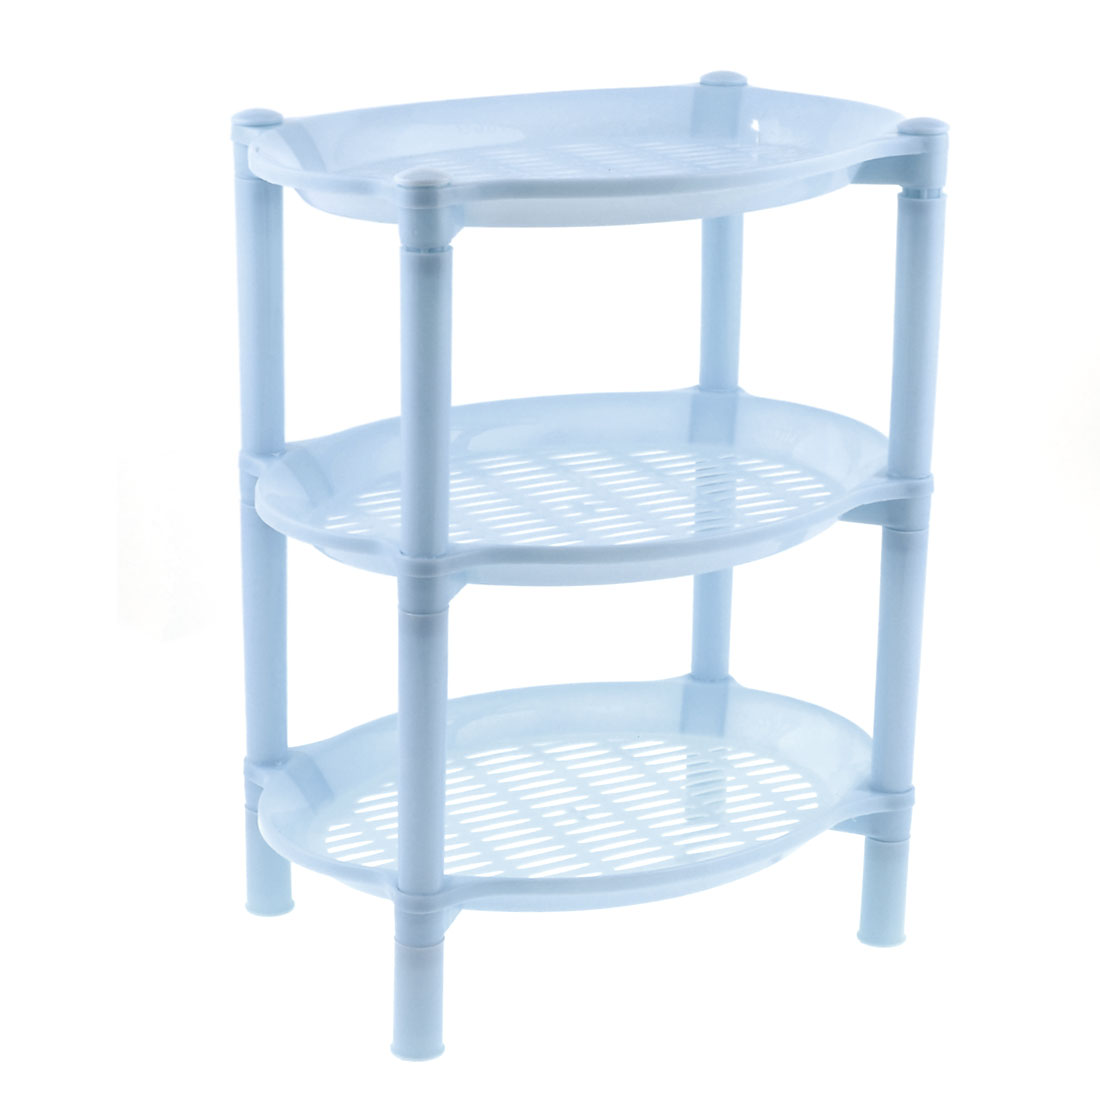 "Table Desk 14"" Height Light Blue Plastic Oval 3 Layers Storage Rack Organizer"